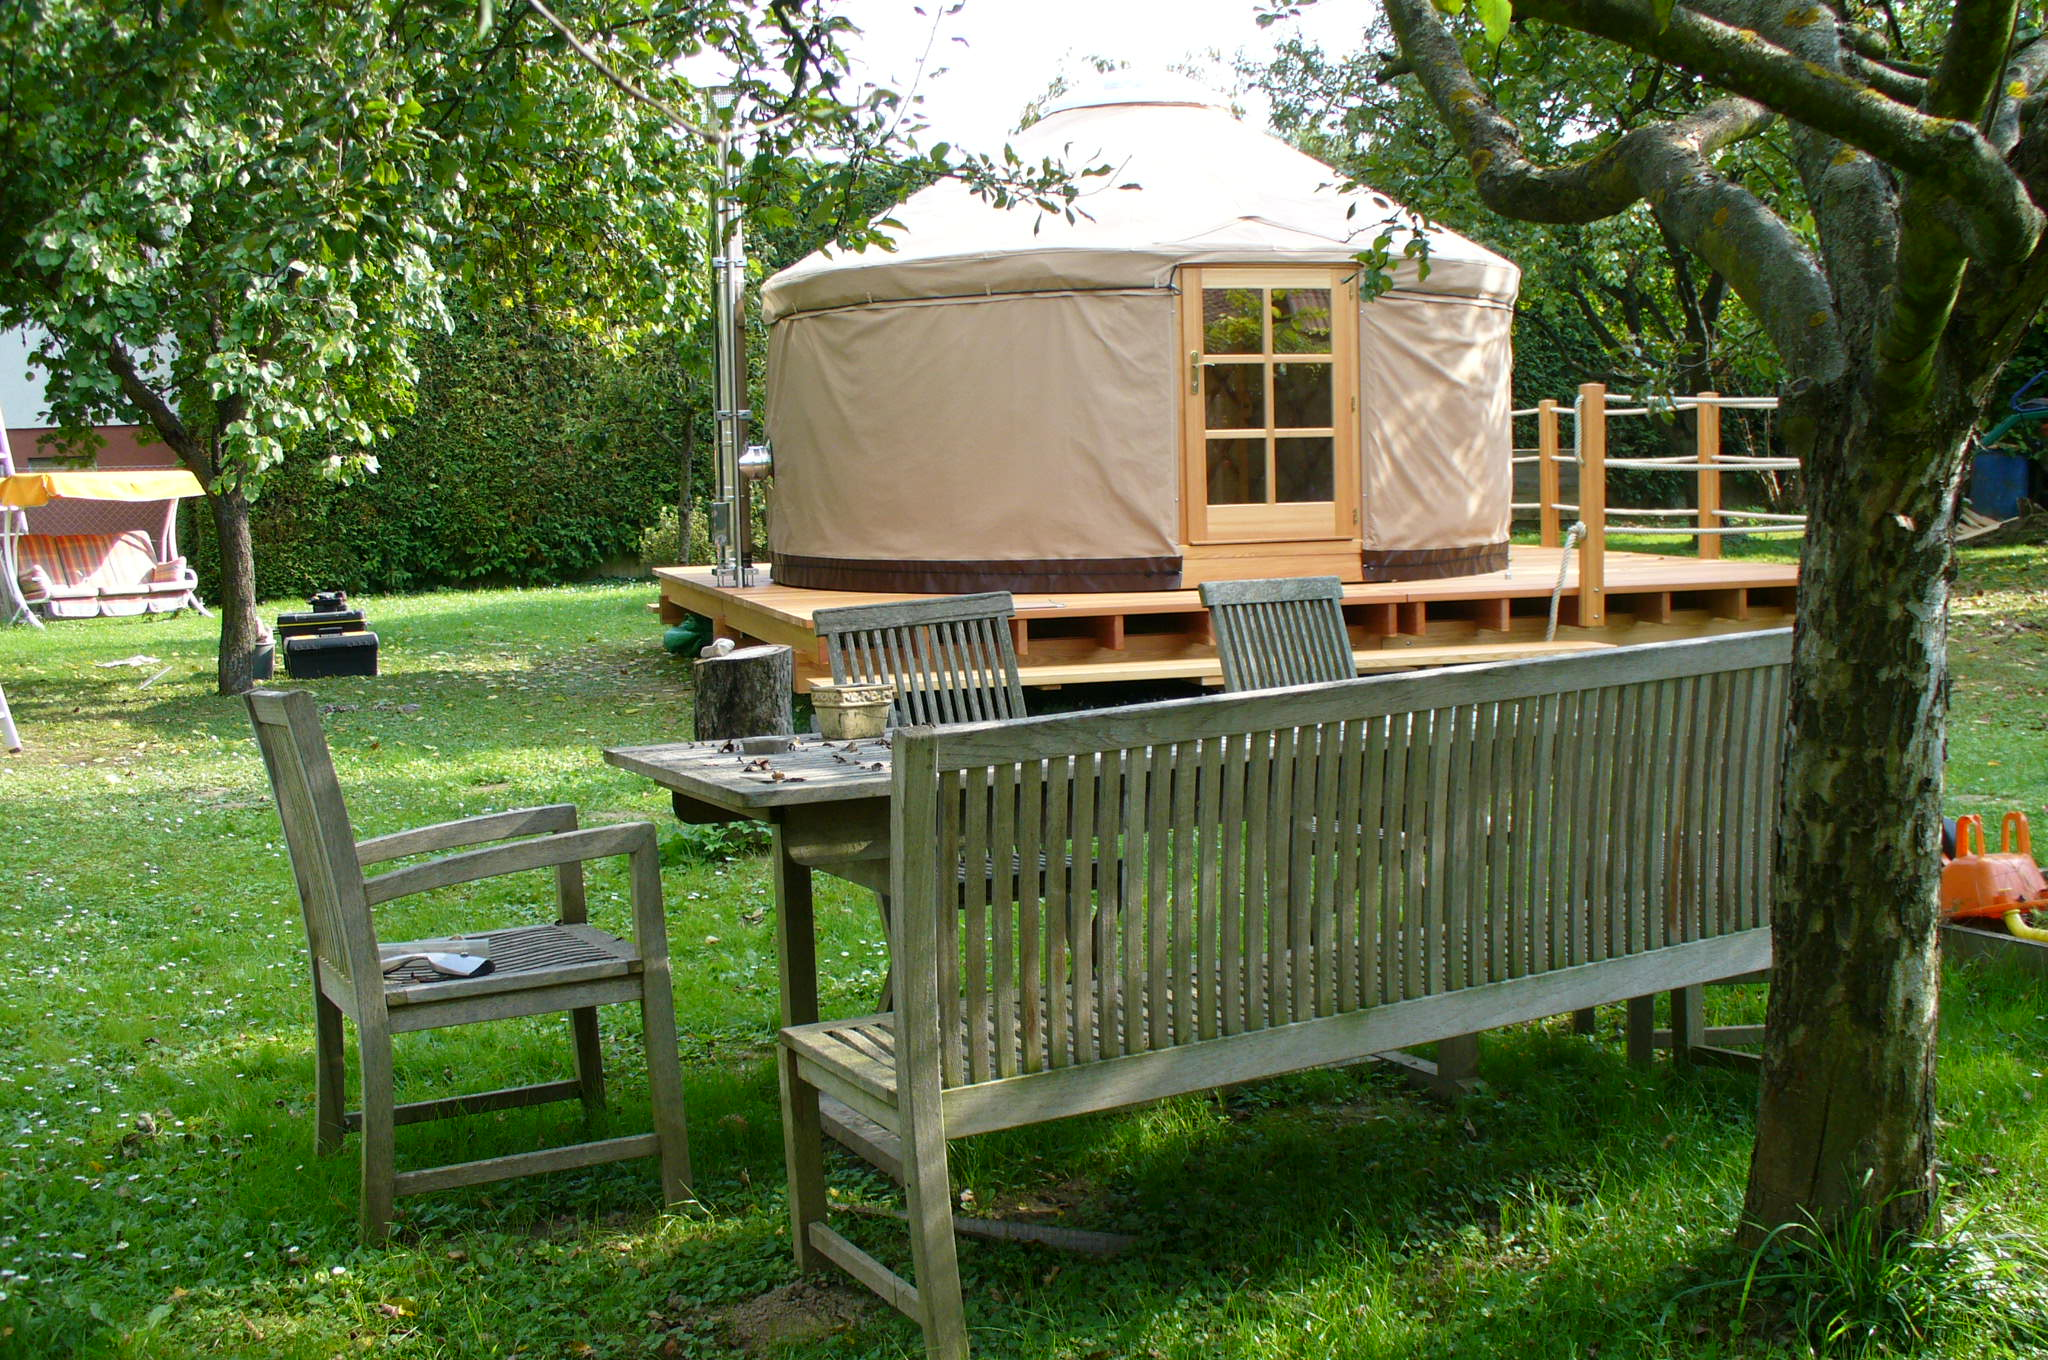 Krems an der Donau - 4,5 meters yurt